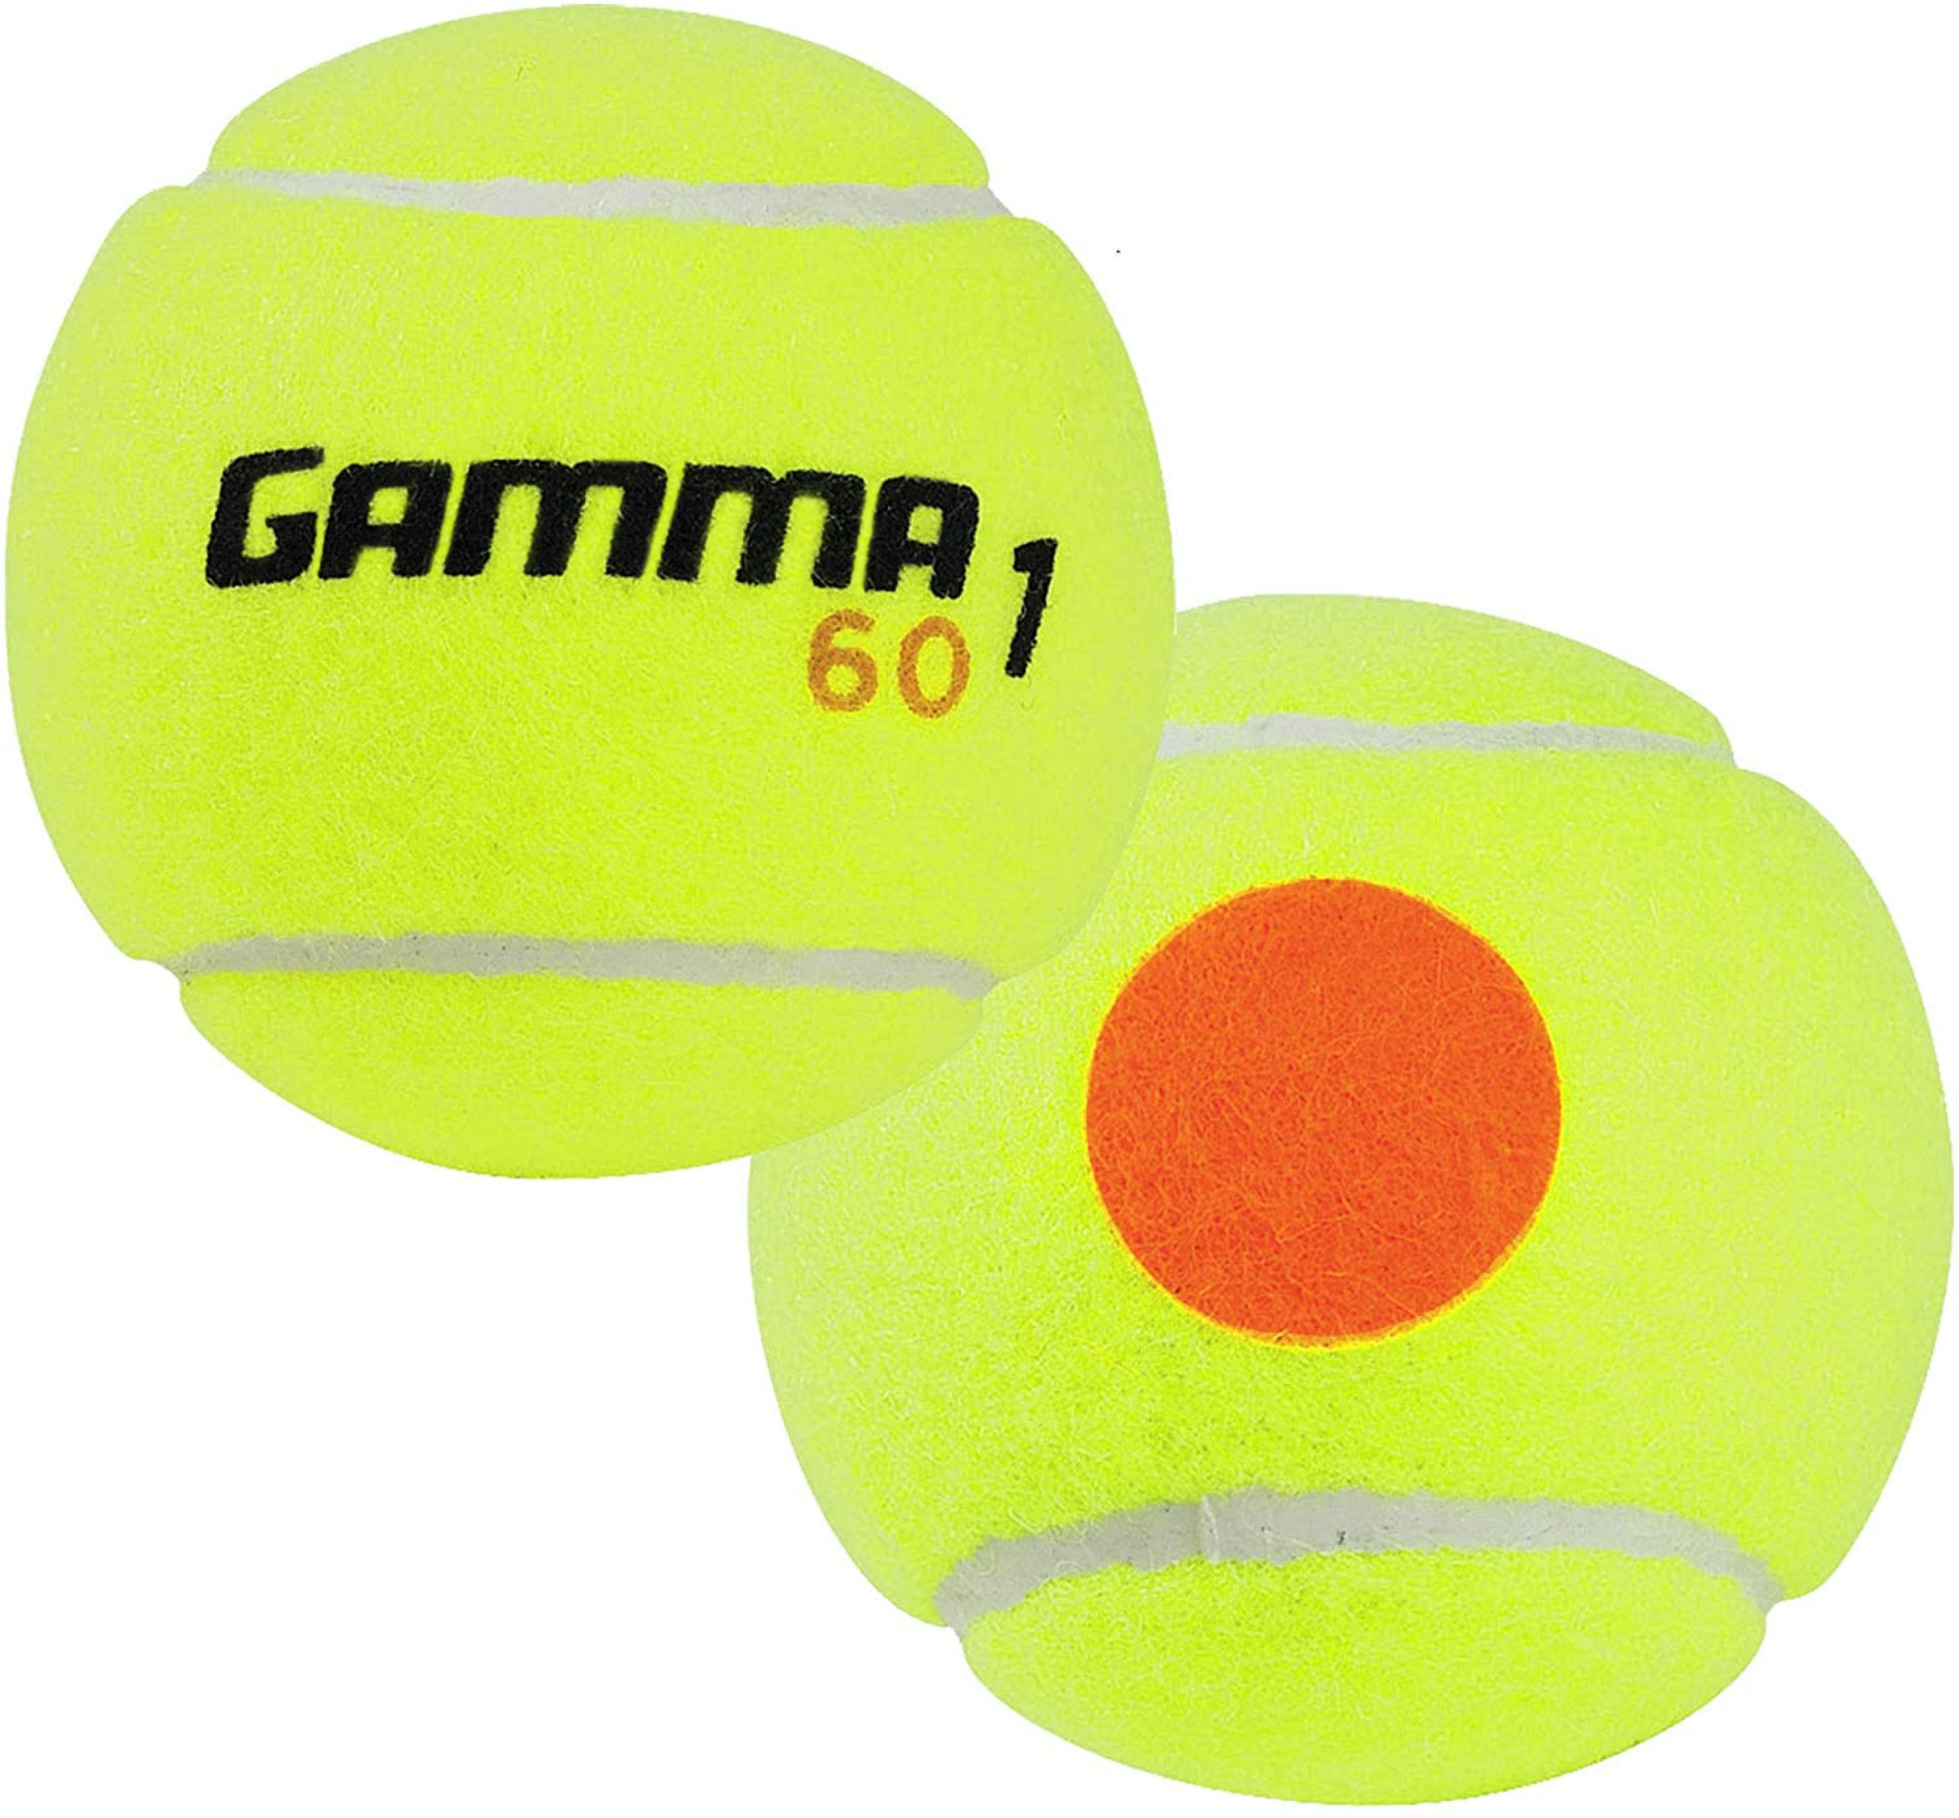 Gamma 60' Orange Dot Balls (Can of 3 Balls) - For Juniors 9 - 11 Years Old